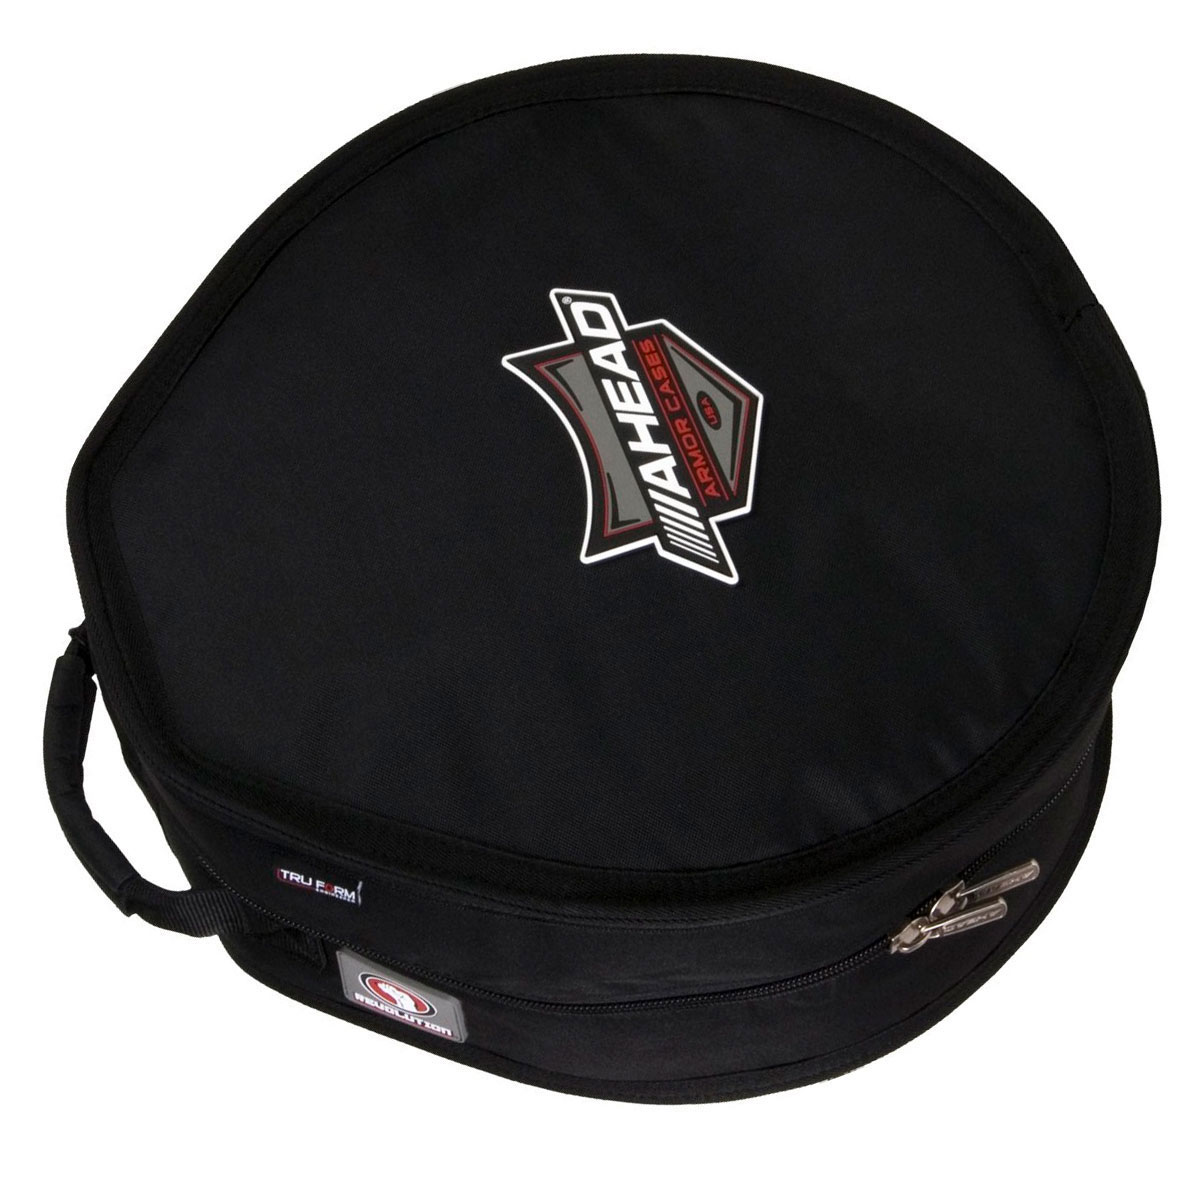 "Ahead Armor 6.5"" (Deep) x 13"" (Diameter) Snare Case"